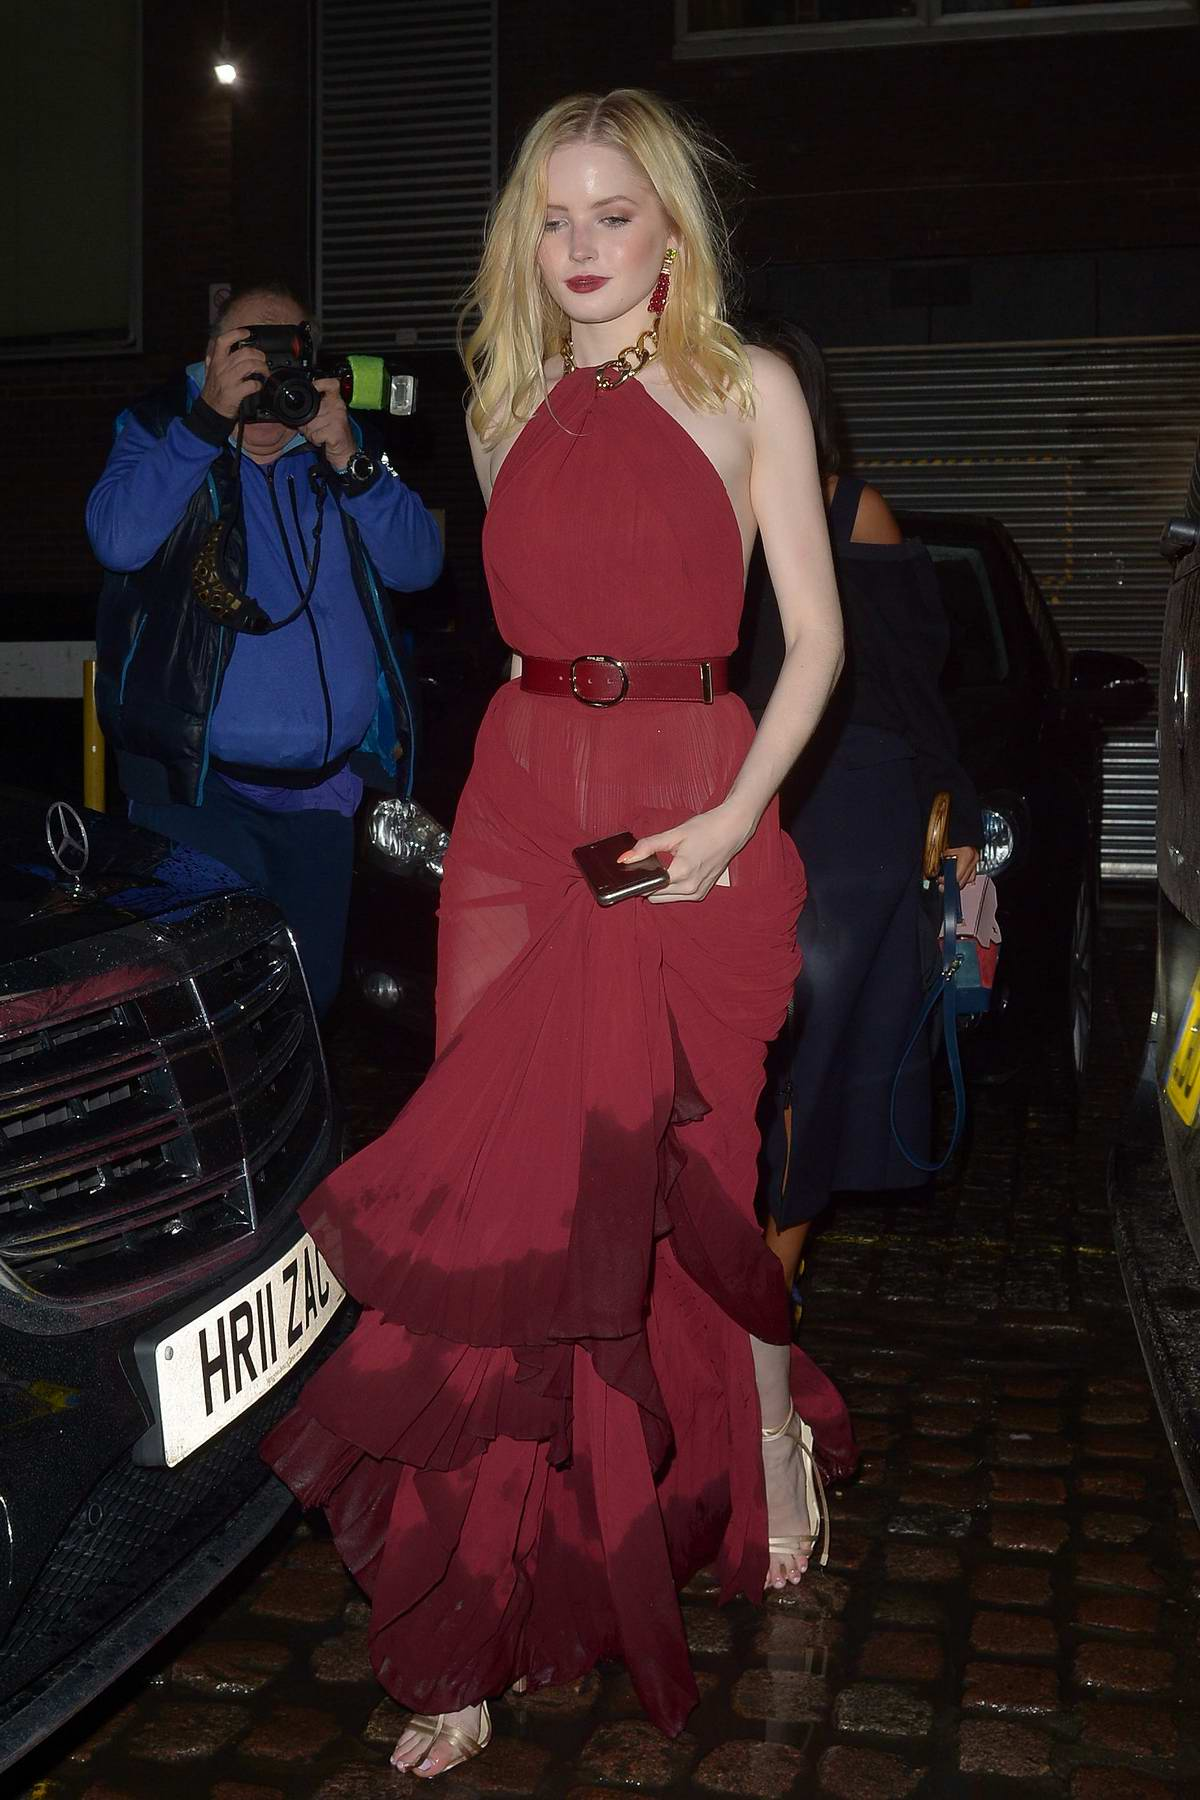 Ellie Bamber looks gorgeous in a red long dress as she arrives The Chiltern Firehouse in London, UK